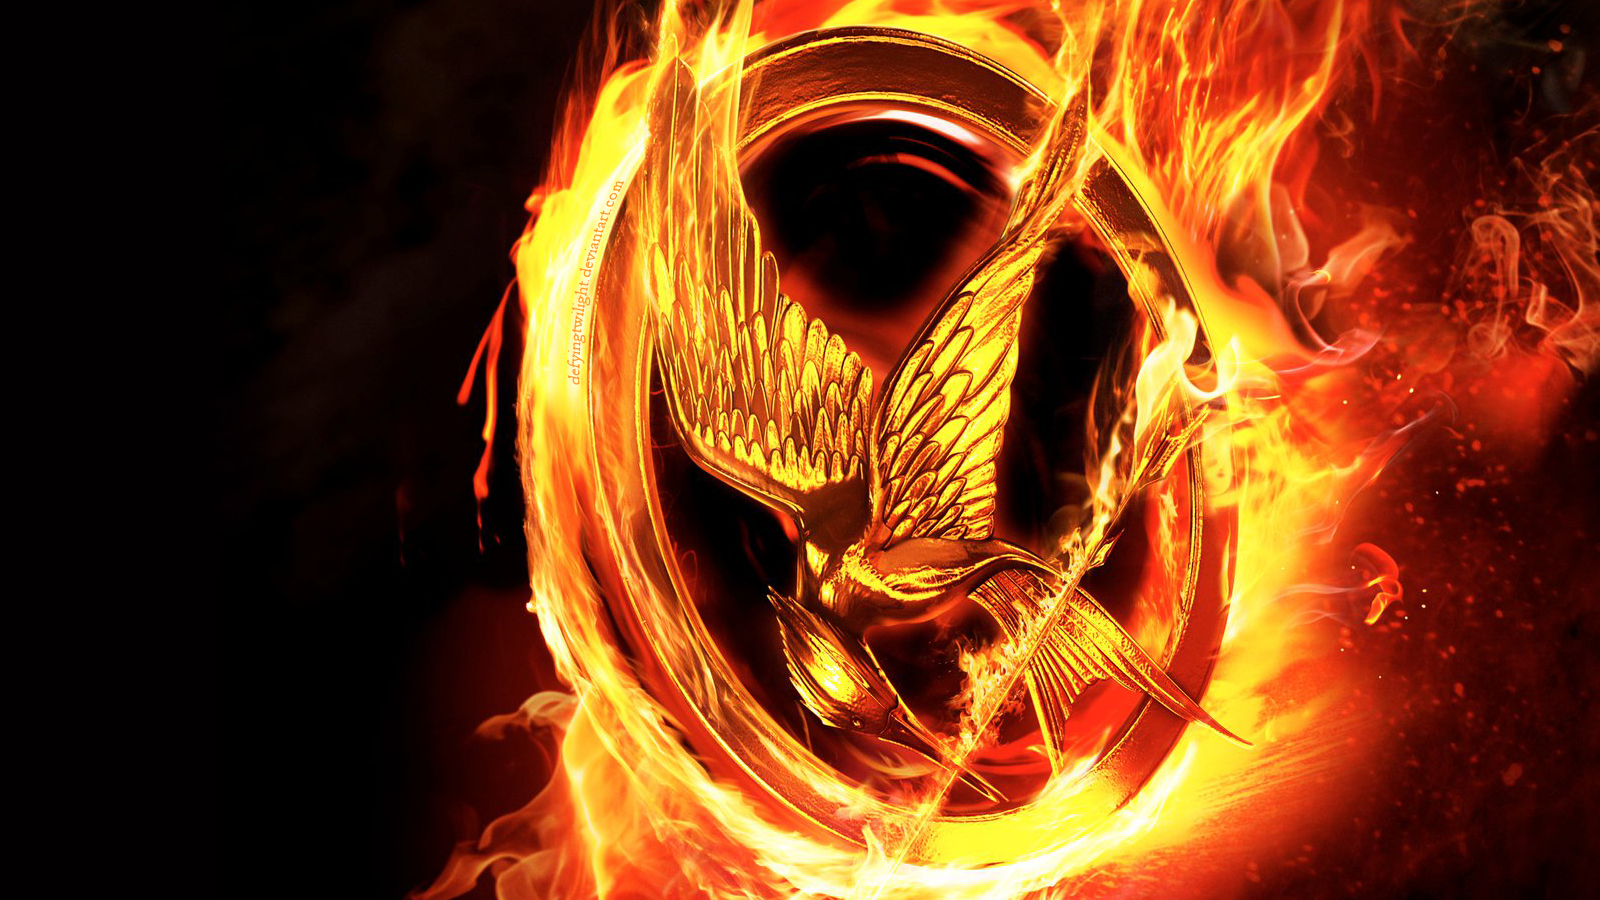 -The-Hunger-Games-Movie-Poster-Wallpapers-the-hunger-games-24129227-1600-900